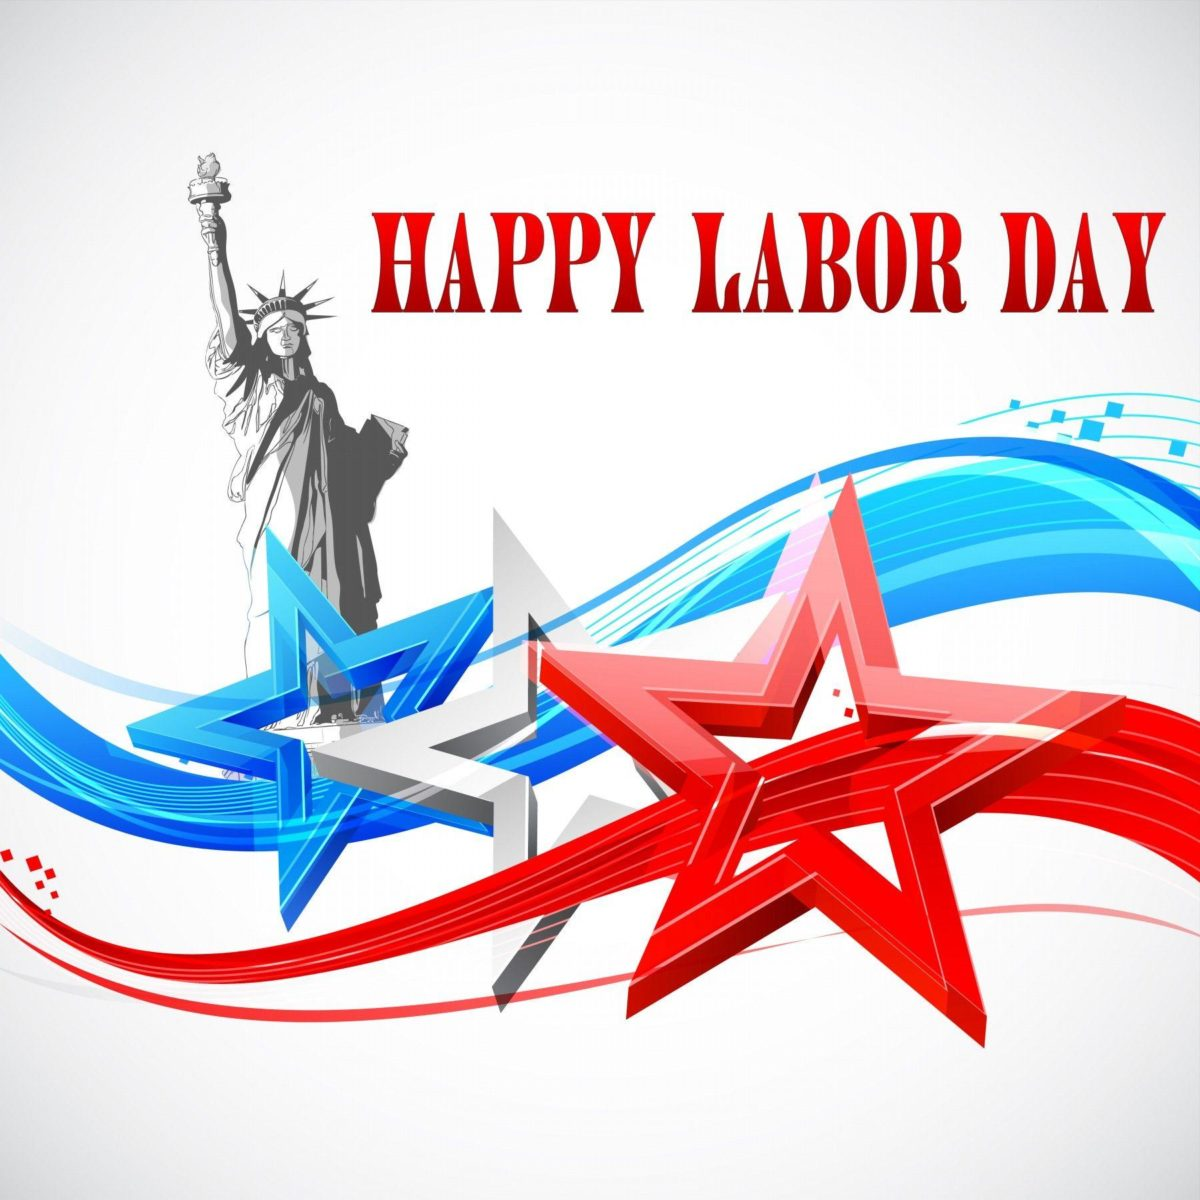 Labor Day USA Wallpapers, Images, Pics, Greetings 2014 …